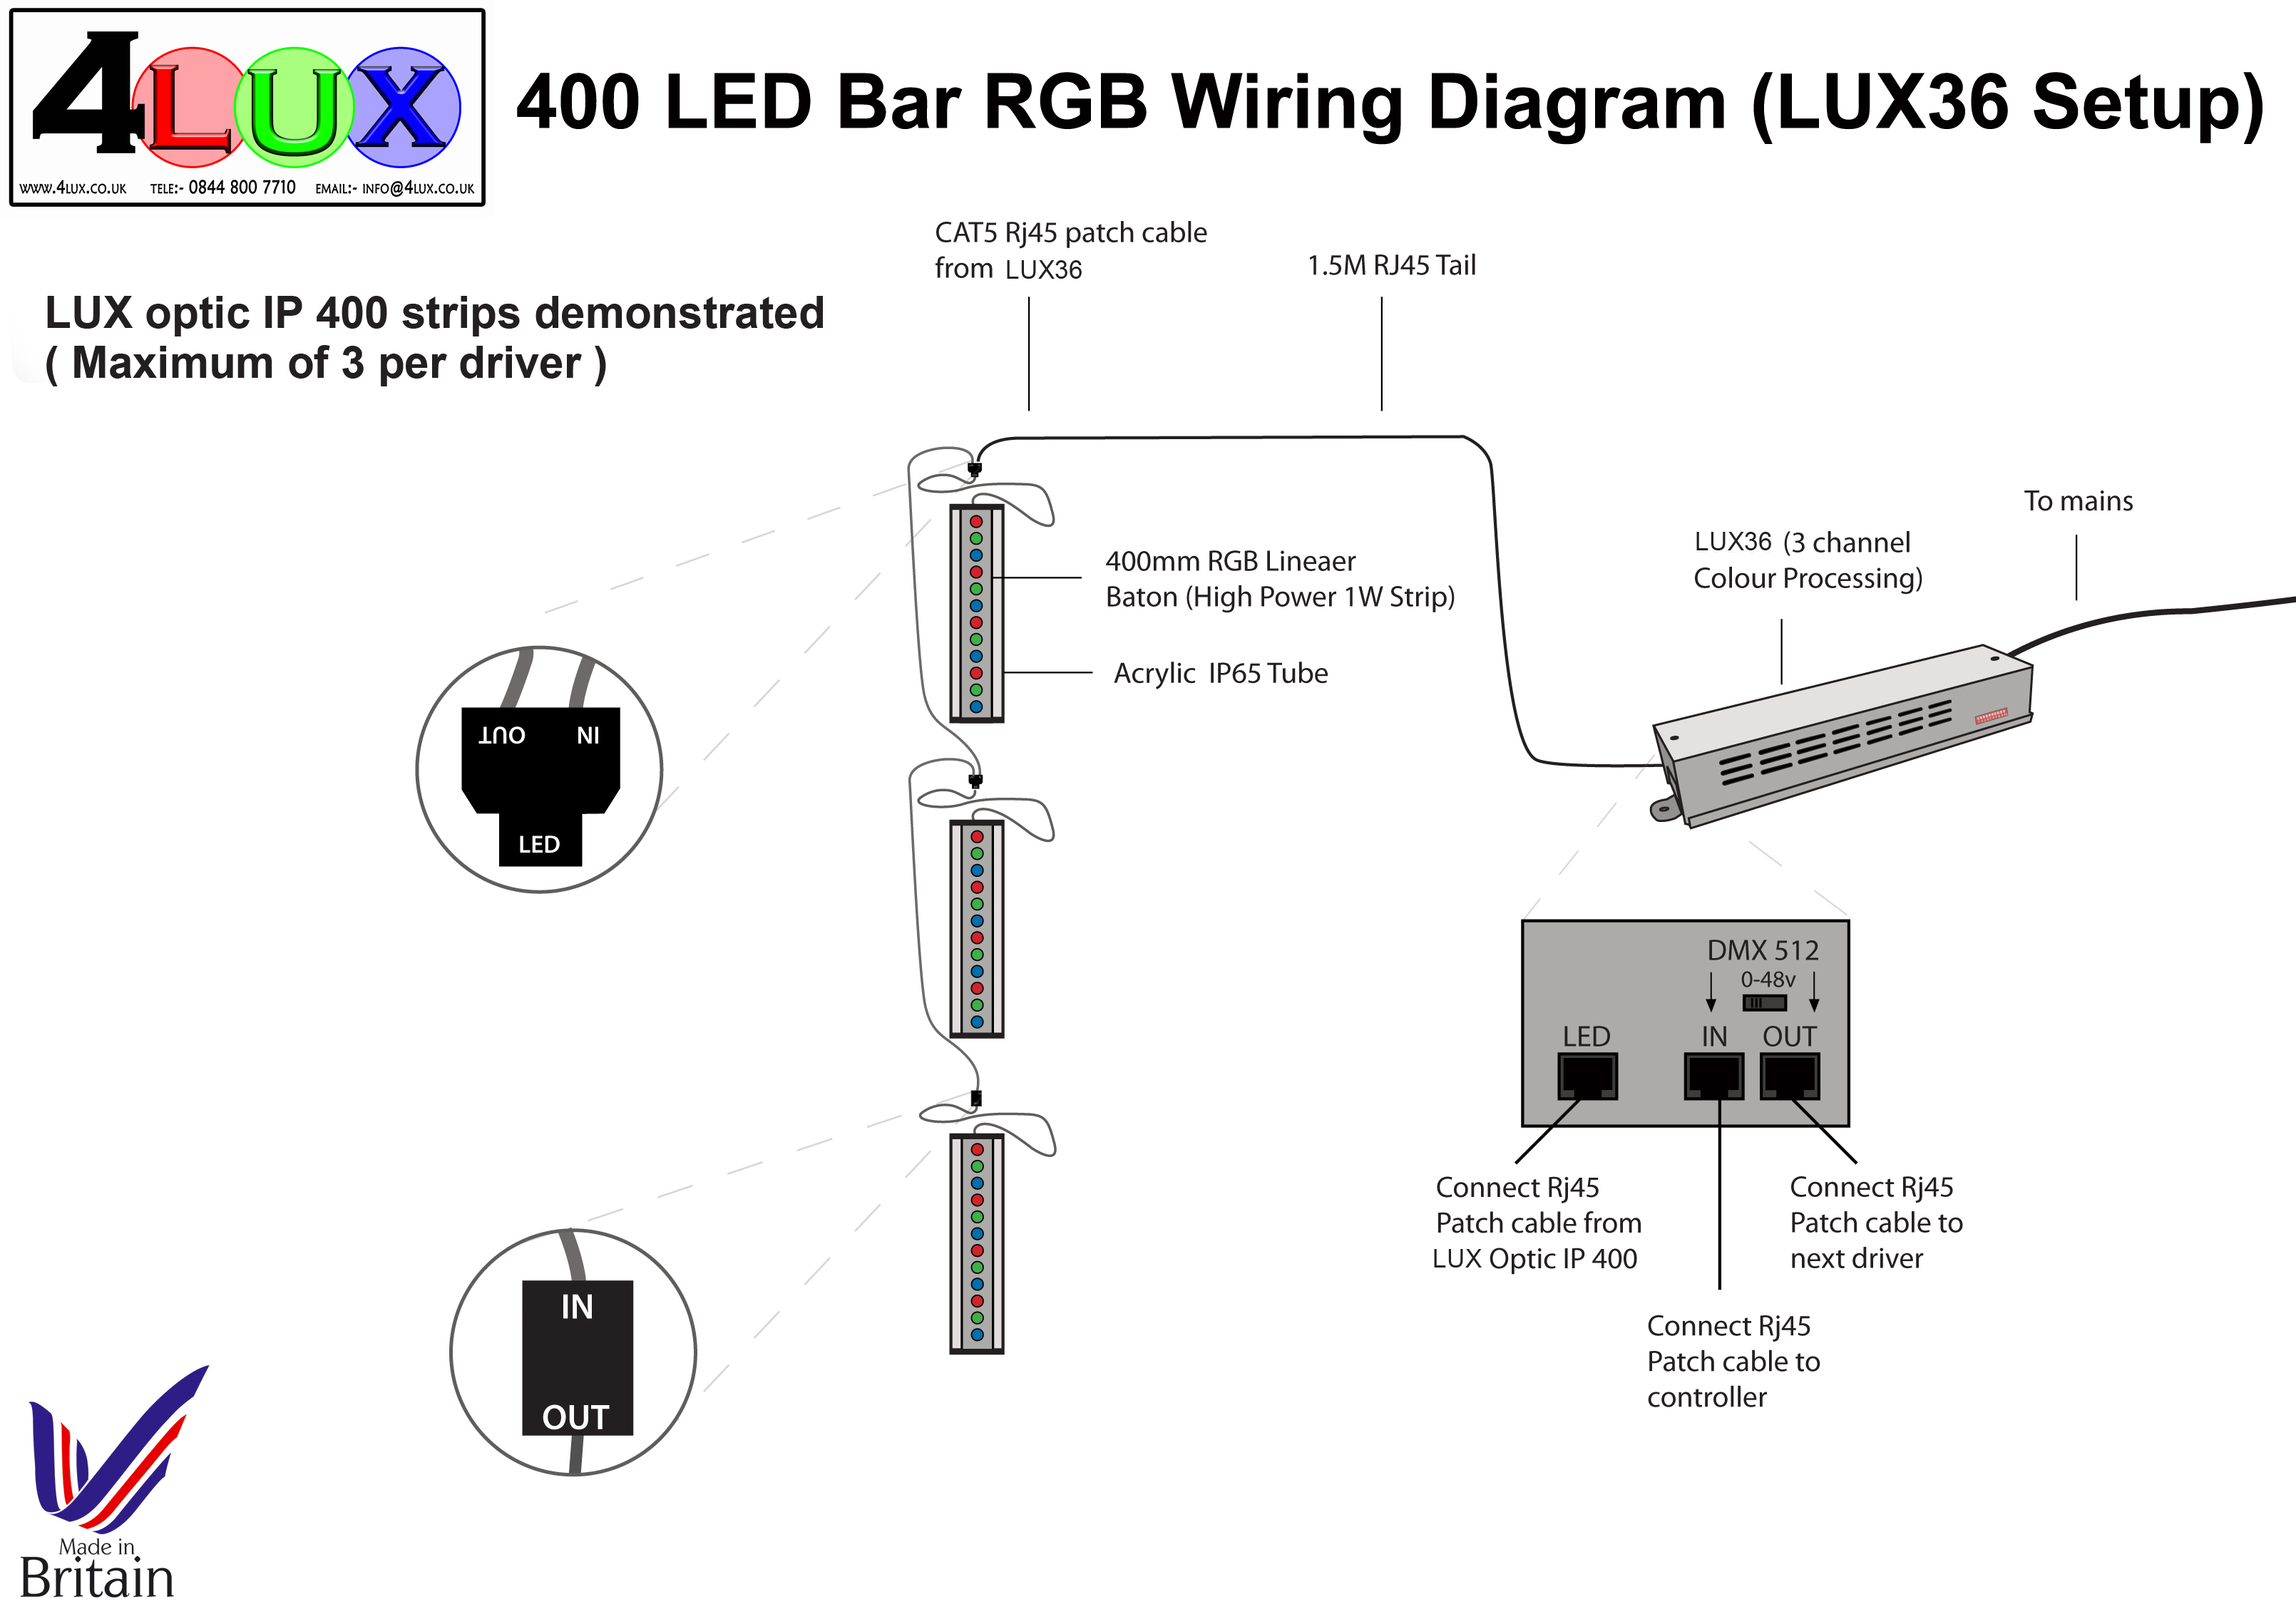 Led Bar Rgbw Non Optic Version 4lux High Power Wiring Diagram Lux 400 Rgb Instructions